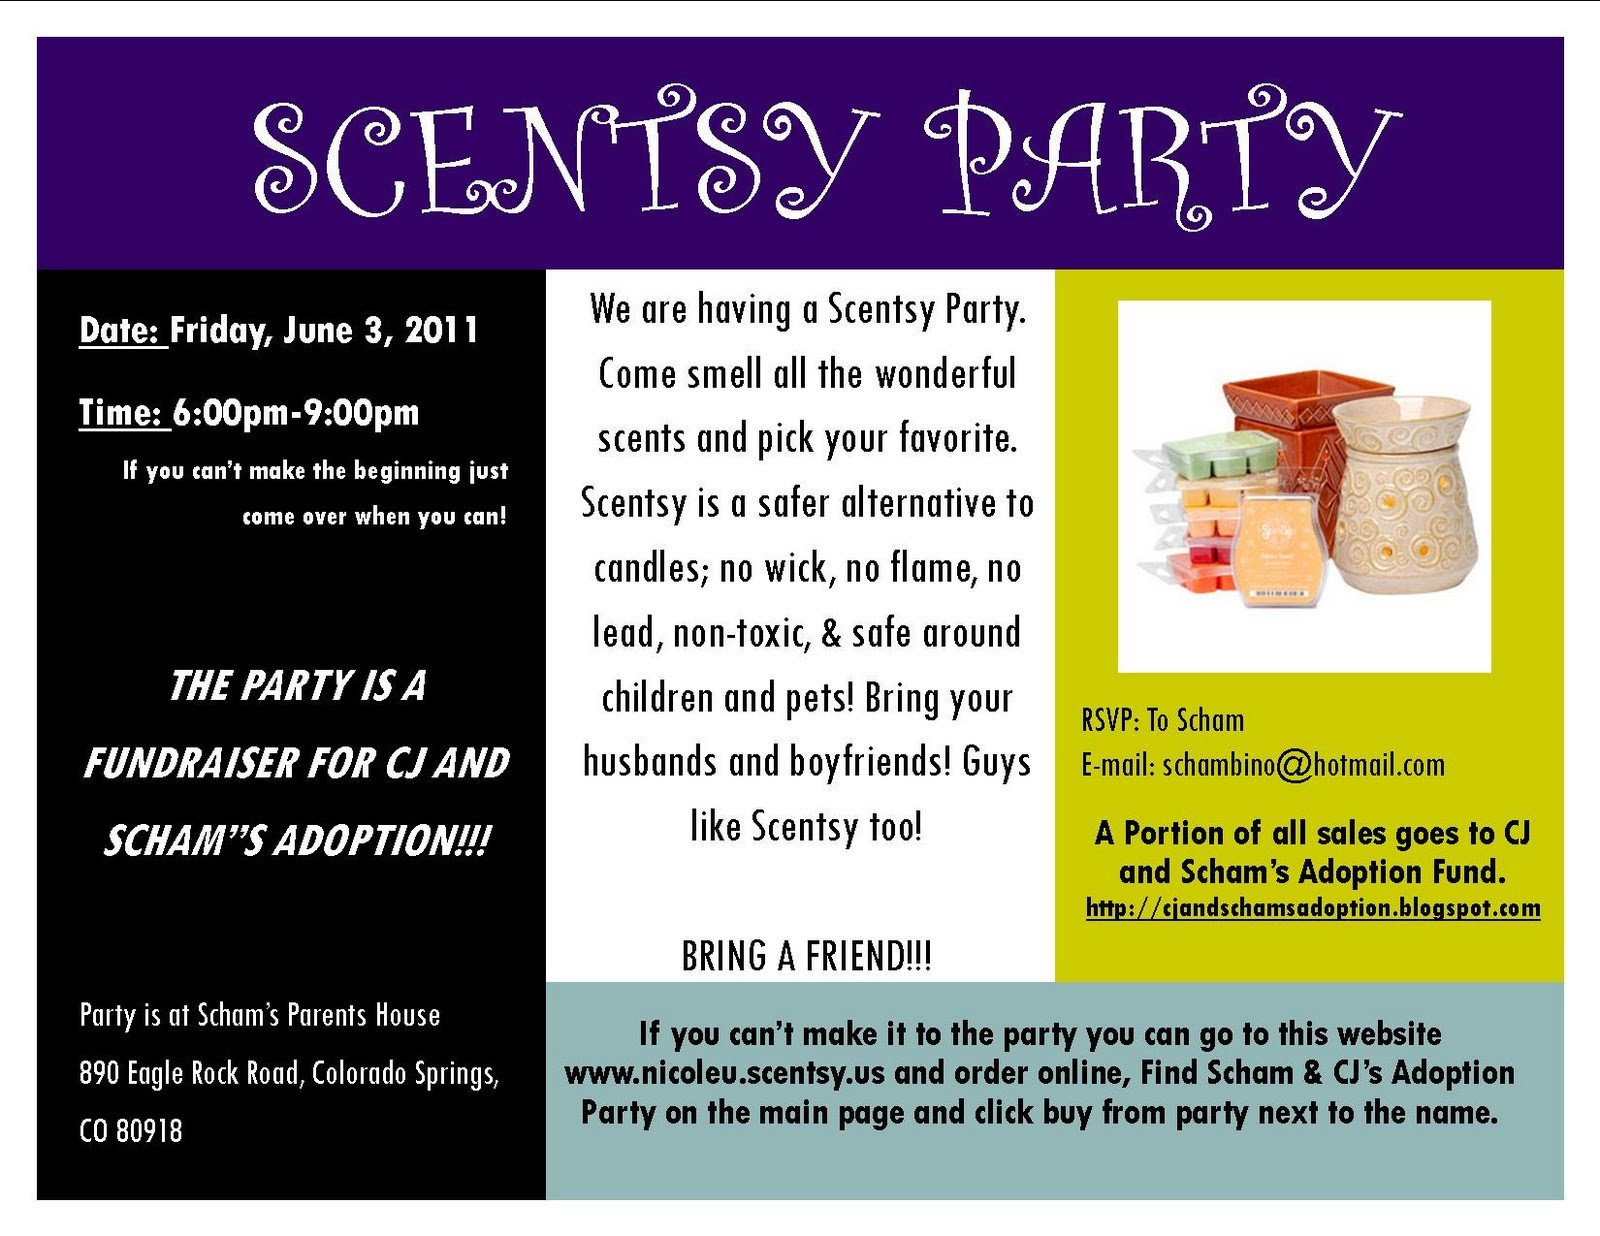 Scentsy Party Invitation Template Cj & Scham S Adoption Journey New Scentsy Fundraiser